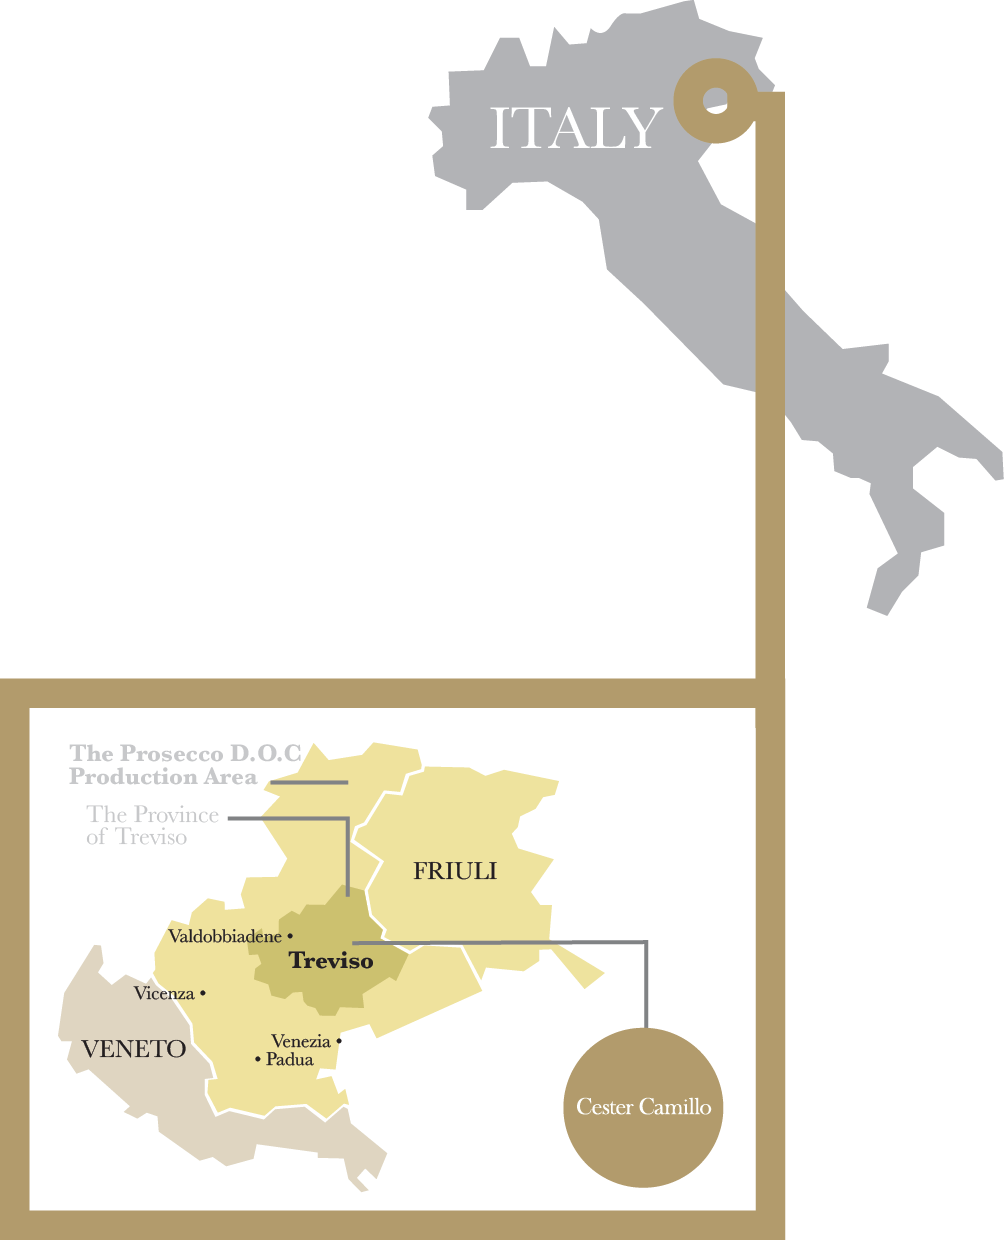 cester-camil-lo-italy-regional-map-revised-a4.png